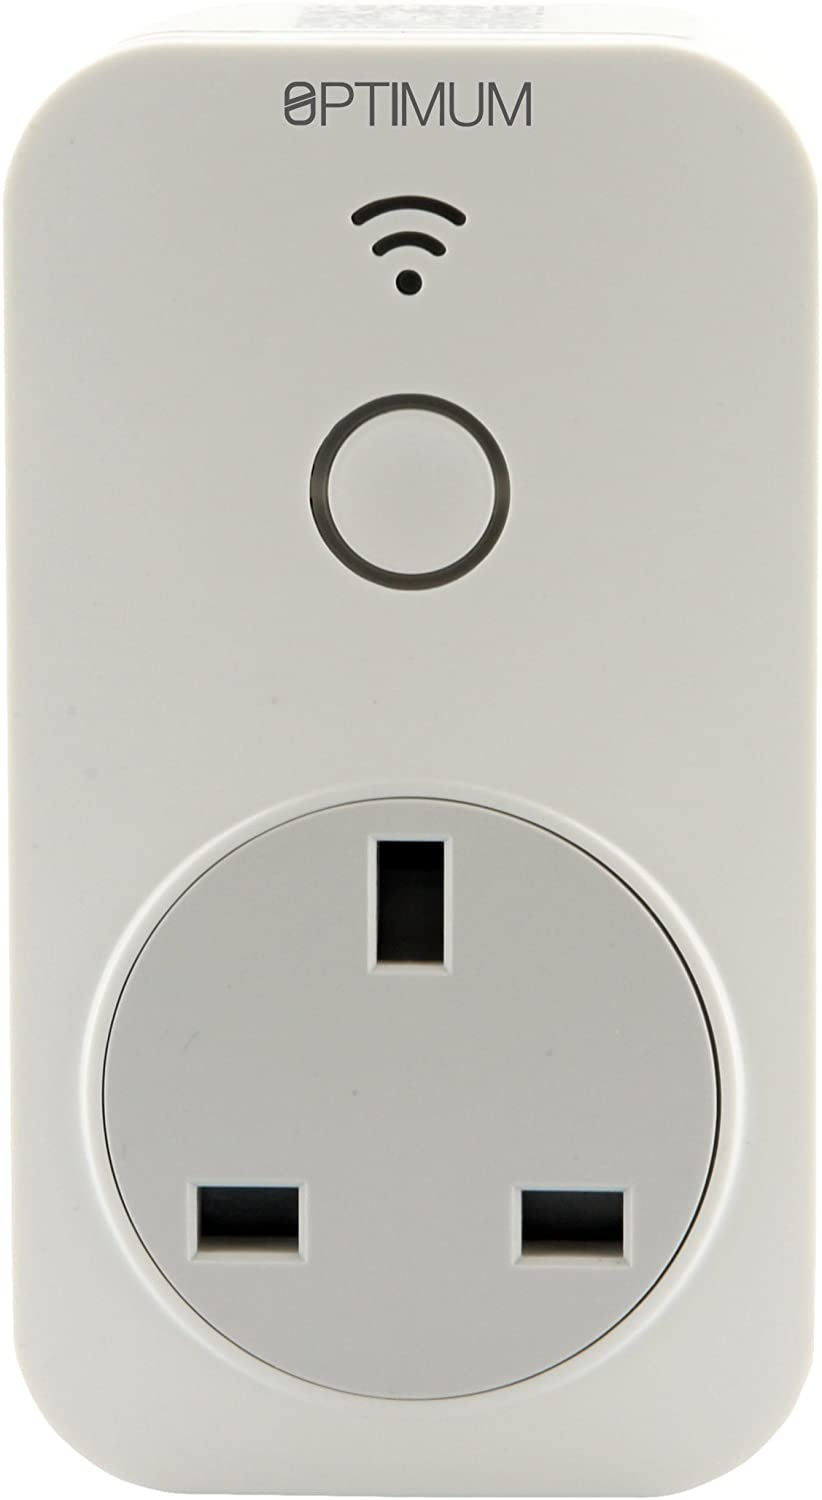 Wi-Fi Enabled Plug in Time Switch, 230 V, White